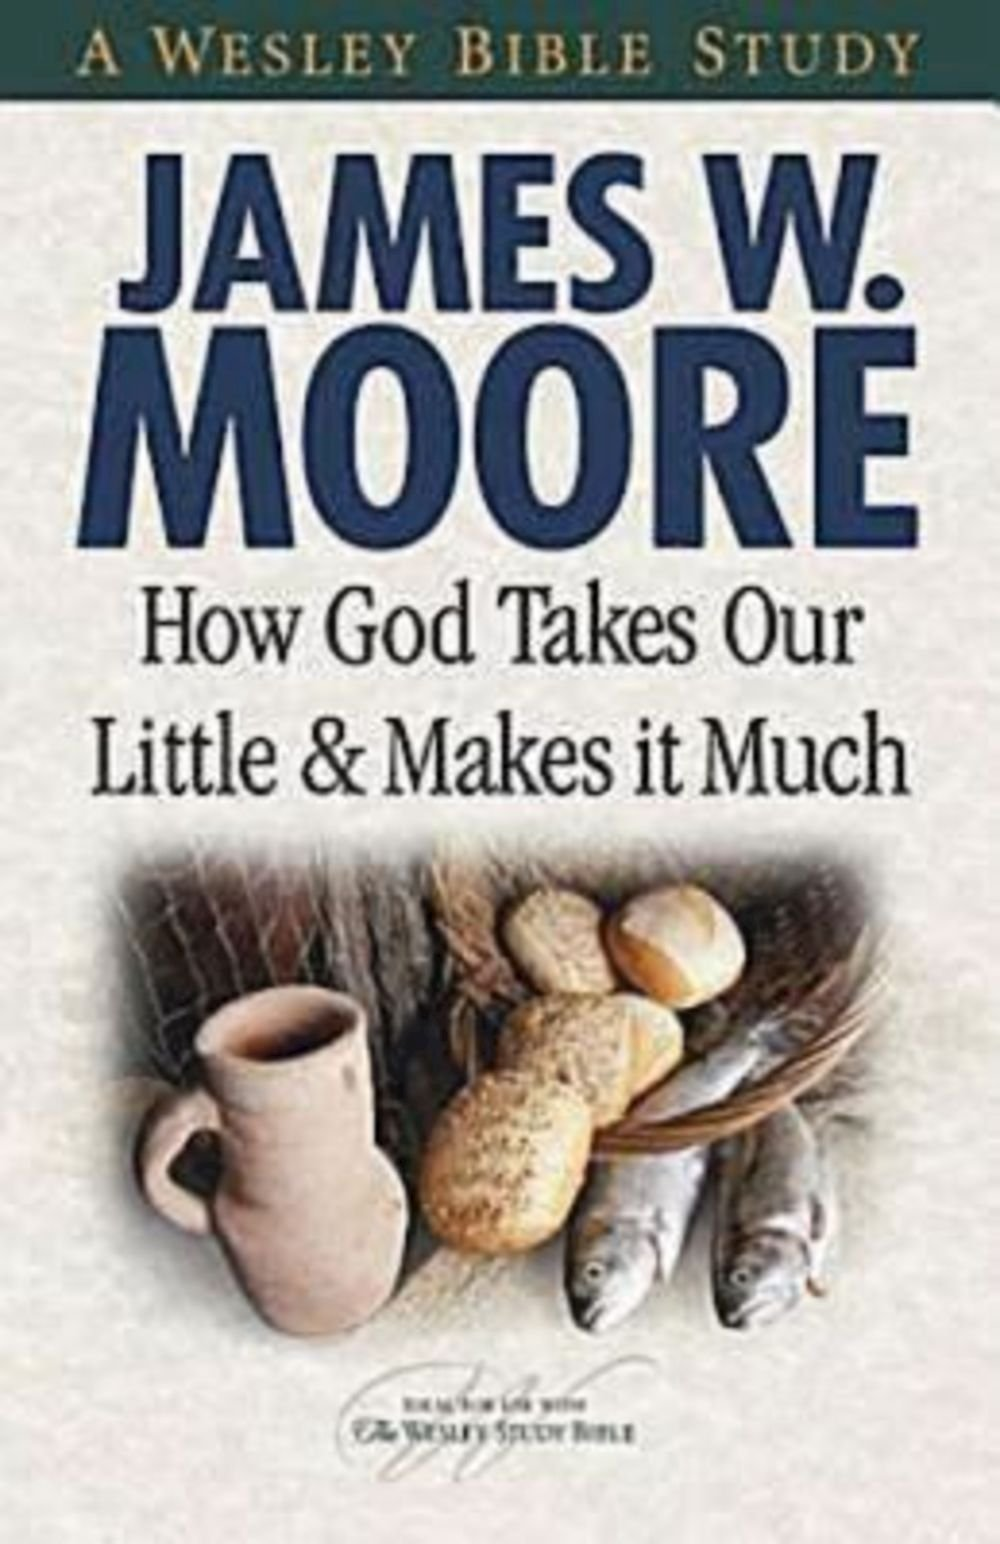 How God Takes Our Little & Makes It Much (A Wesley Bible Study)